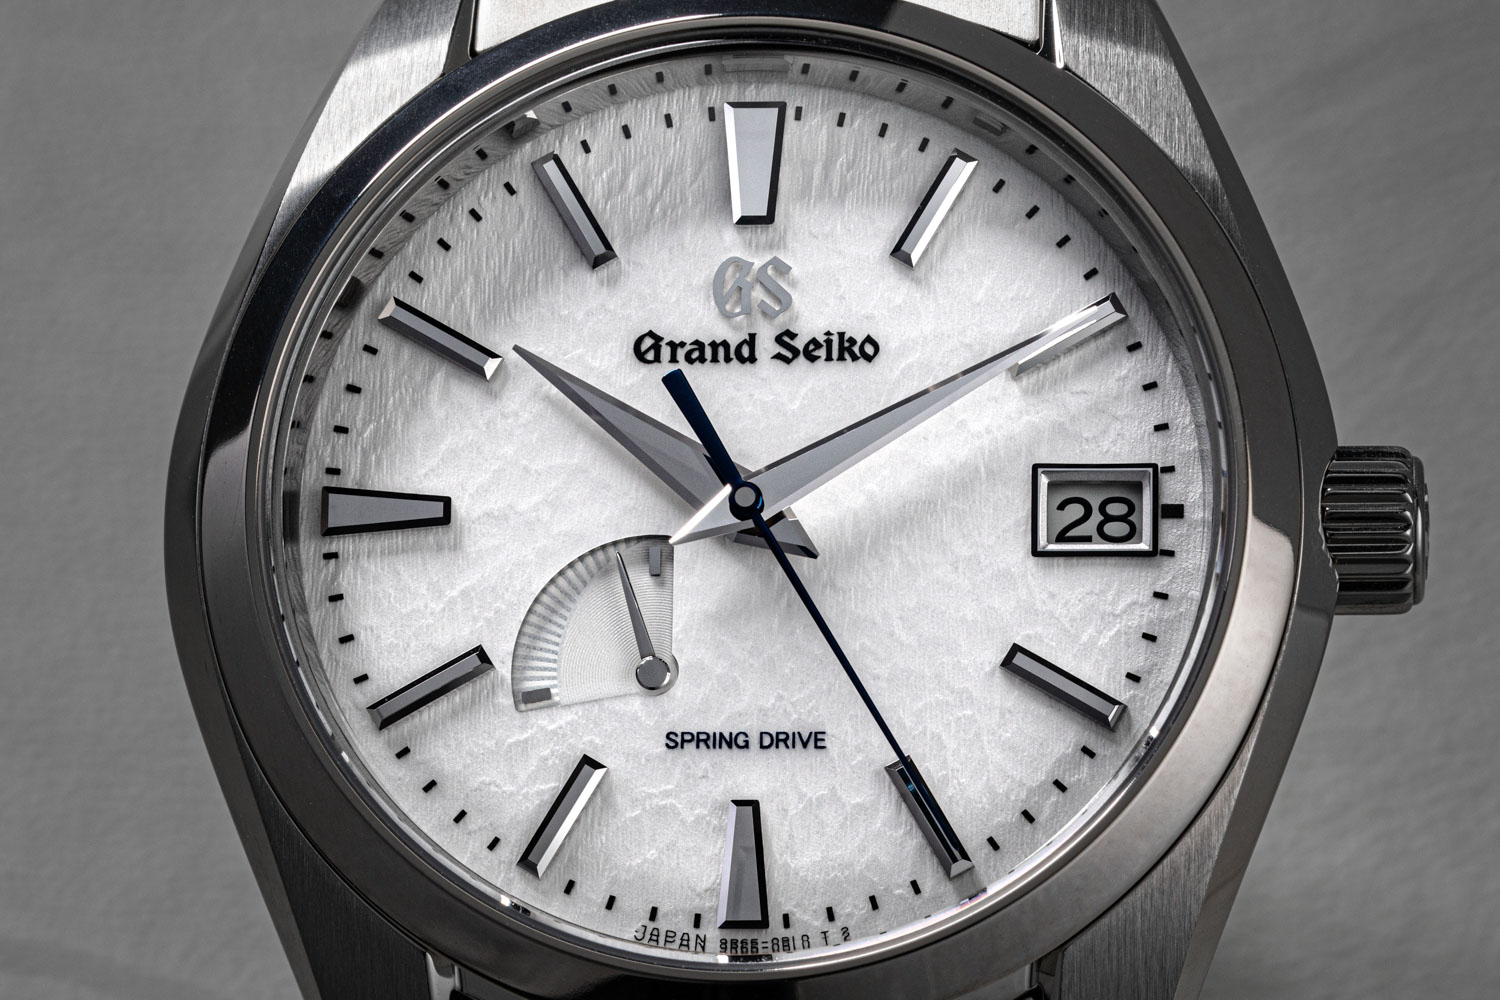 The Grand Seiko 'Snowflake' SBGA211 is one of the most handsome watches around characterized by a dial that perfectly evokes the rippling and undulating surface of the snow surrounding Grand Seiko's Artisan Studio, located in Nagano Prefecture (©Revolution)